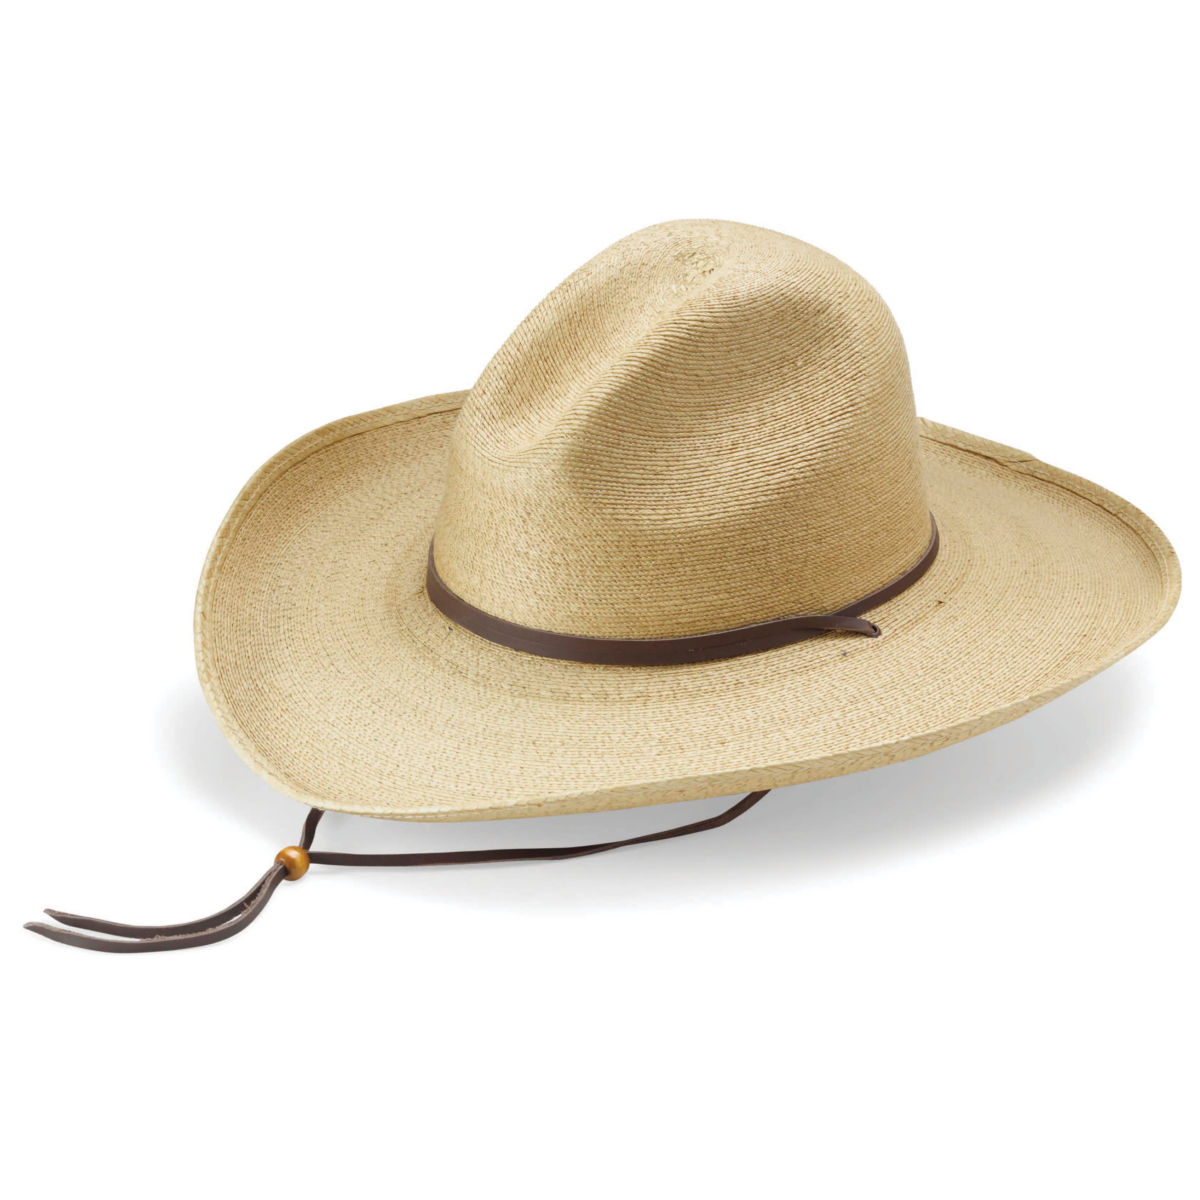 Stetson Cowboy Hat - NATURALimage number 0